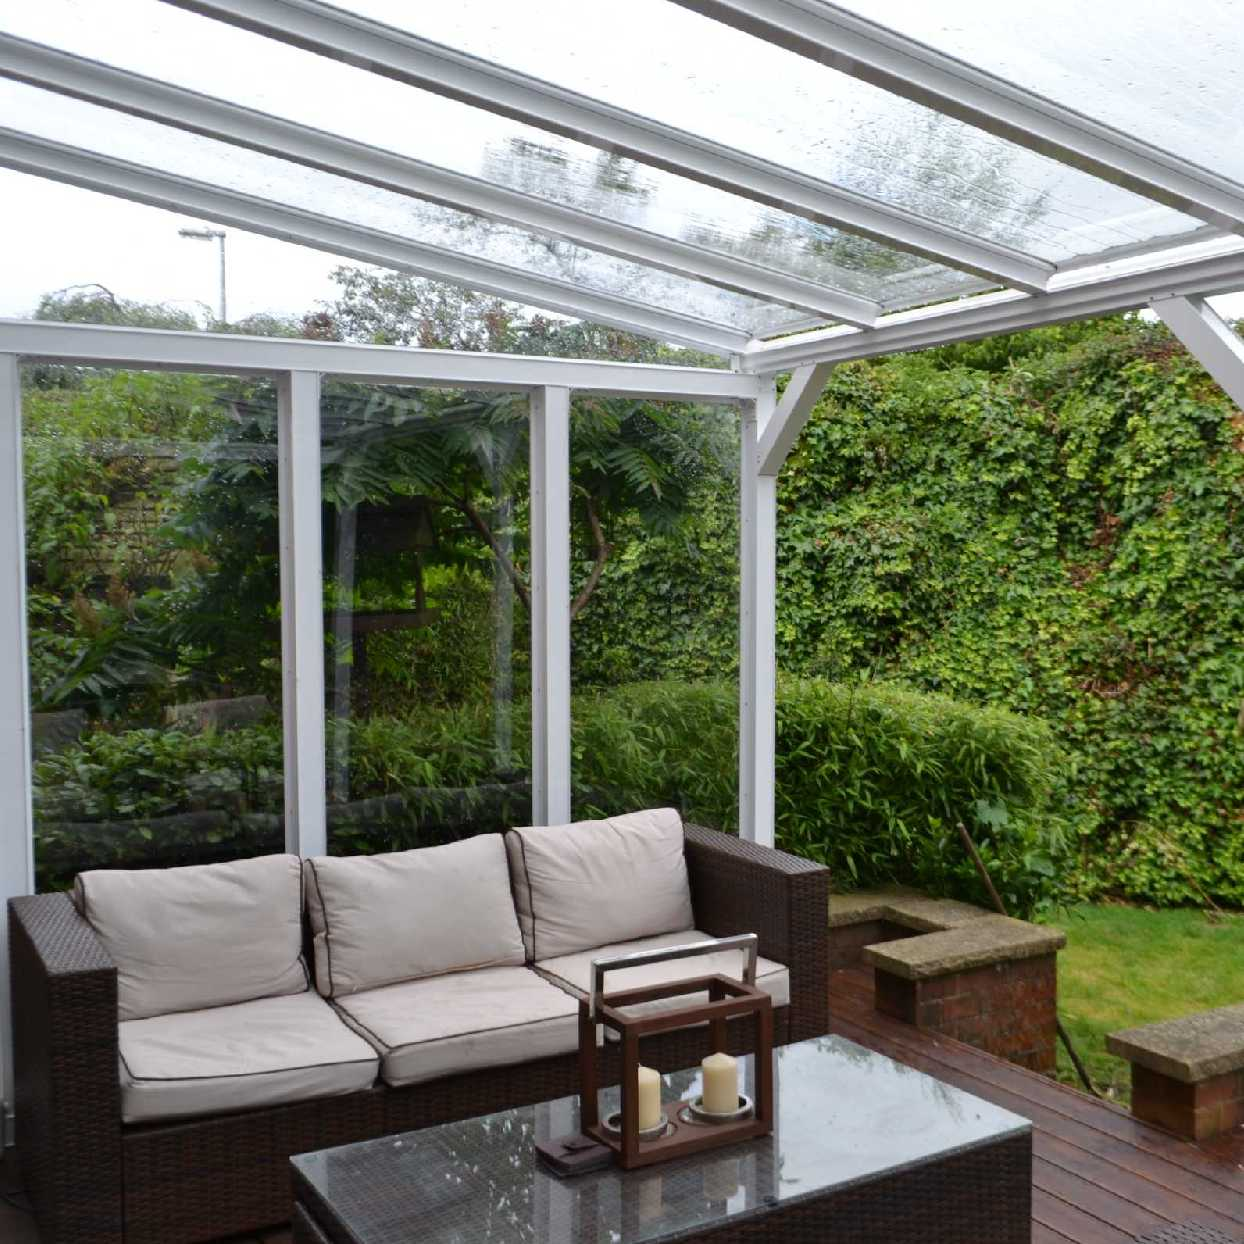 Omega Smart Lean-To Canopy with 6mm Glass Clear Plate Polycarbonate Glazing - 10.5m (W) x 2.0m (P), (5) Supporting Posts